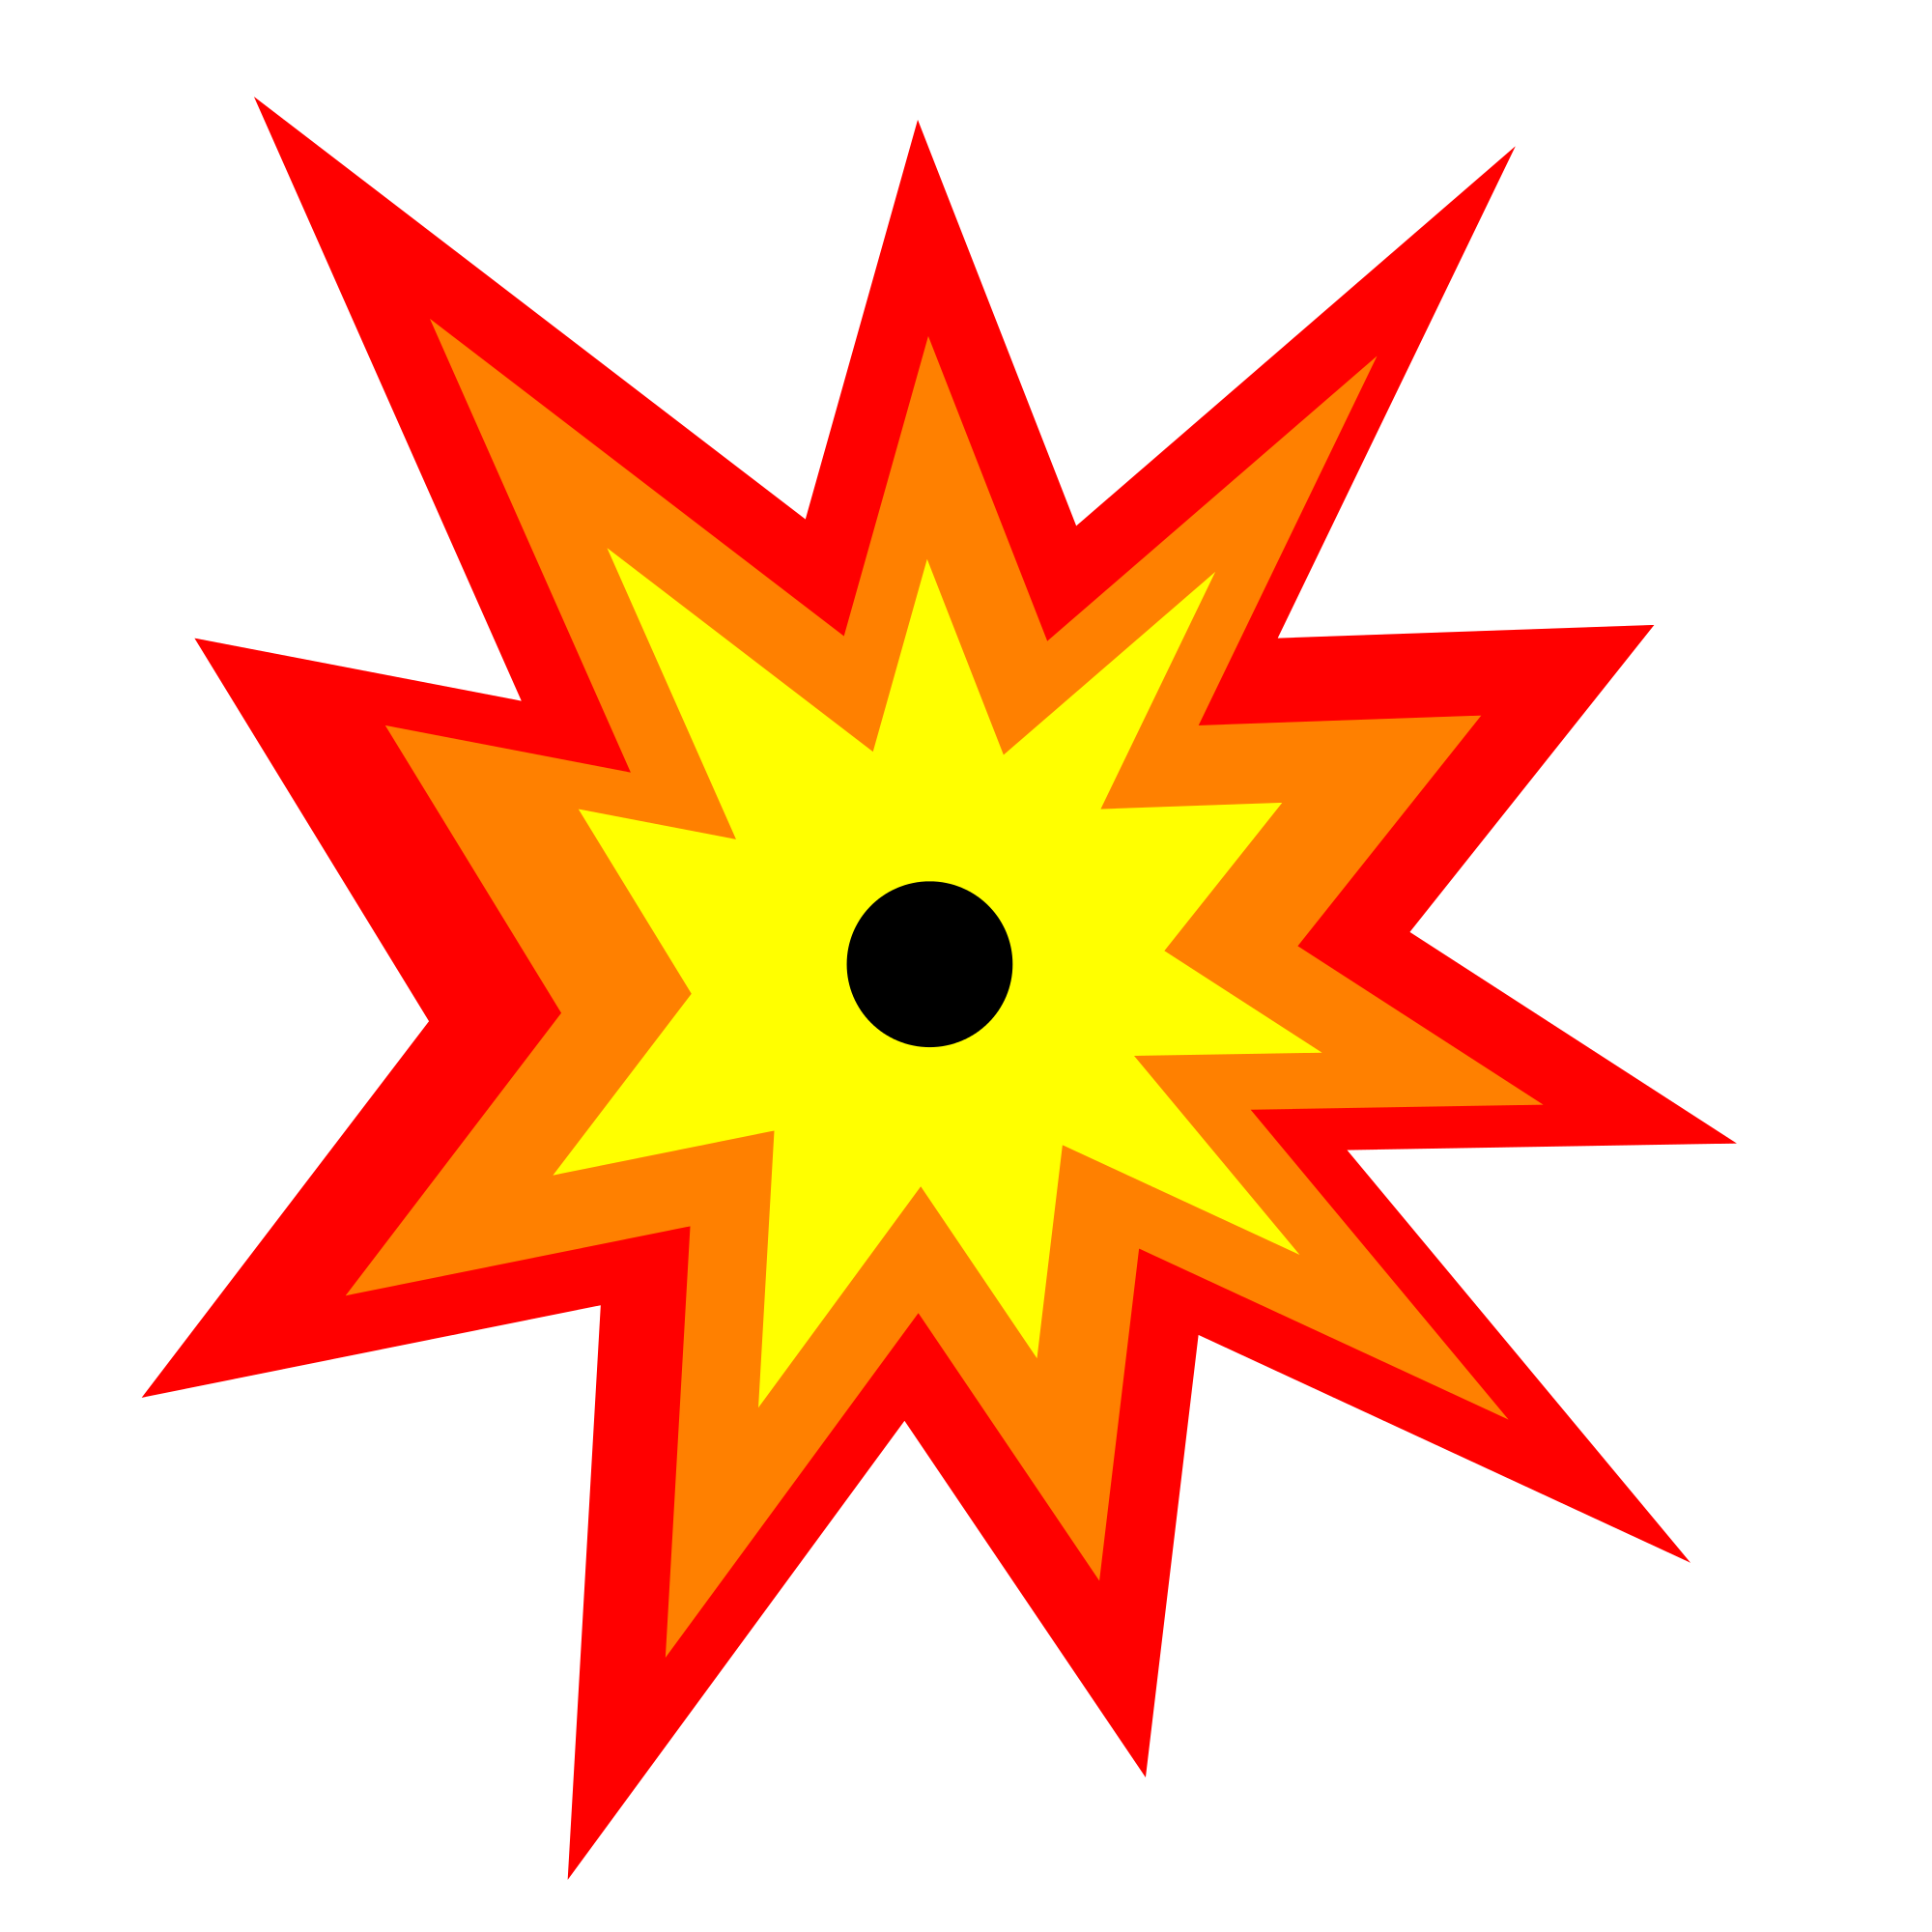 File explosion icon svg. Exploding star clipart